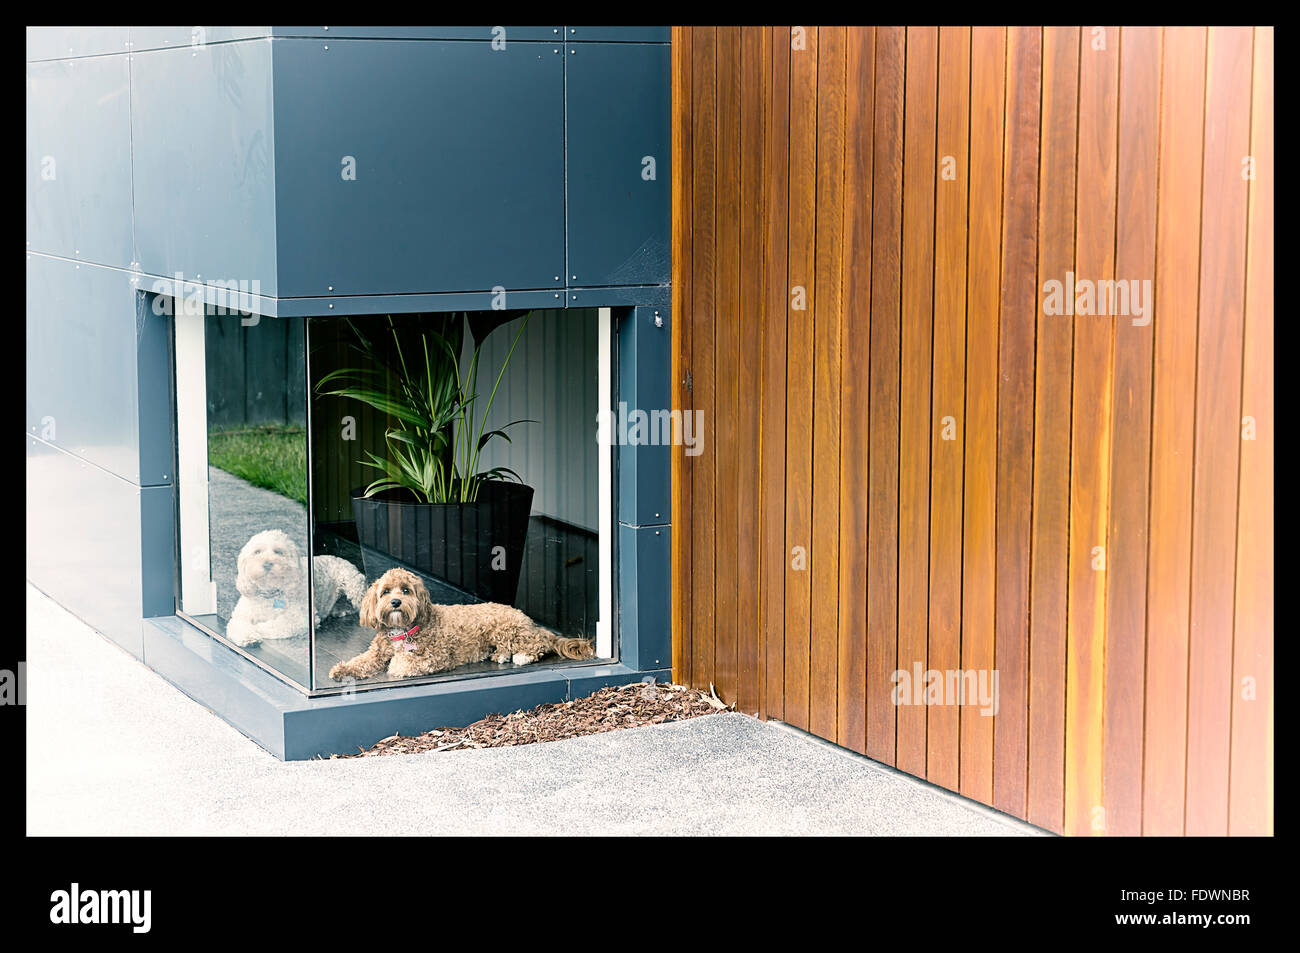 A vintage colour photograph of a white dog and a brown dog waiting infront of a low window at a house with timber - Stock Image